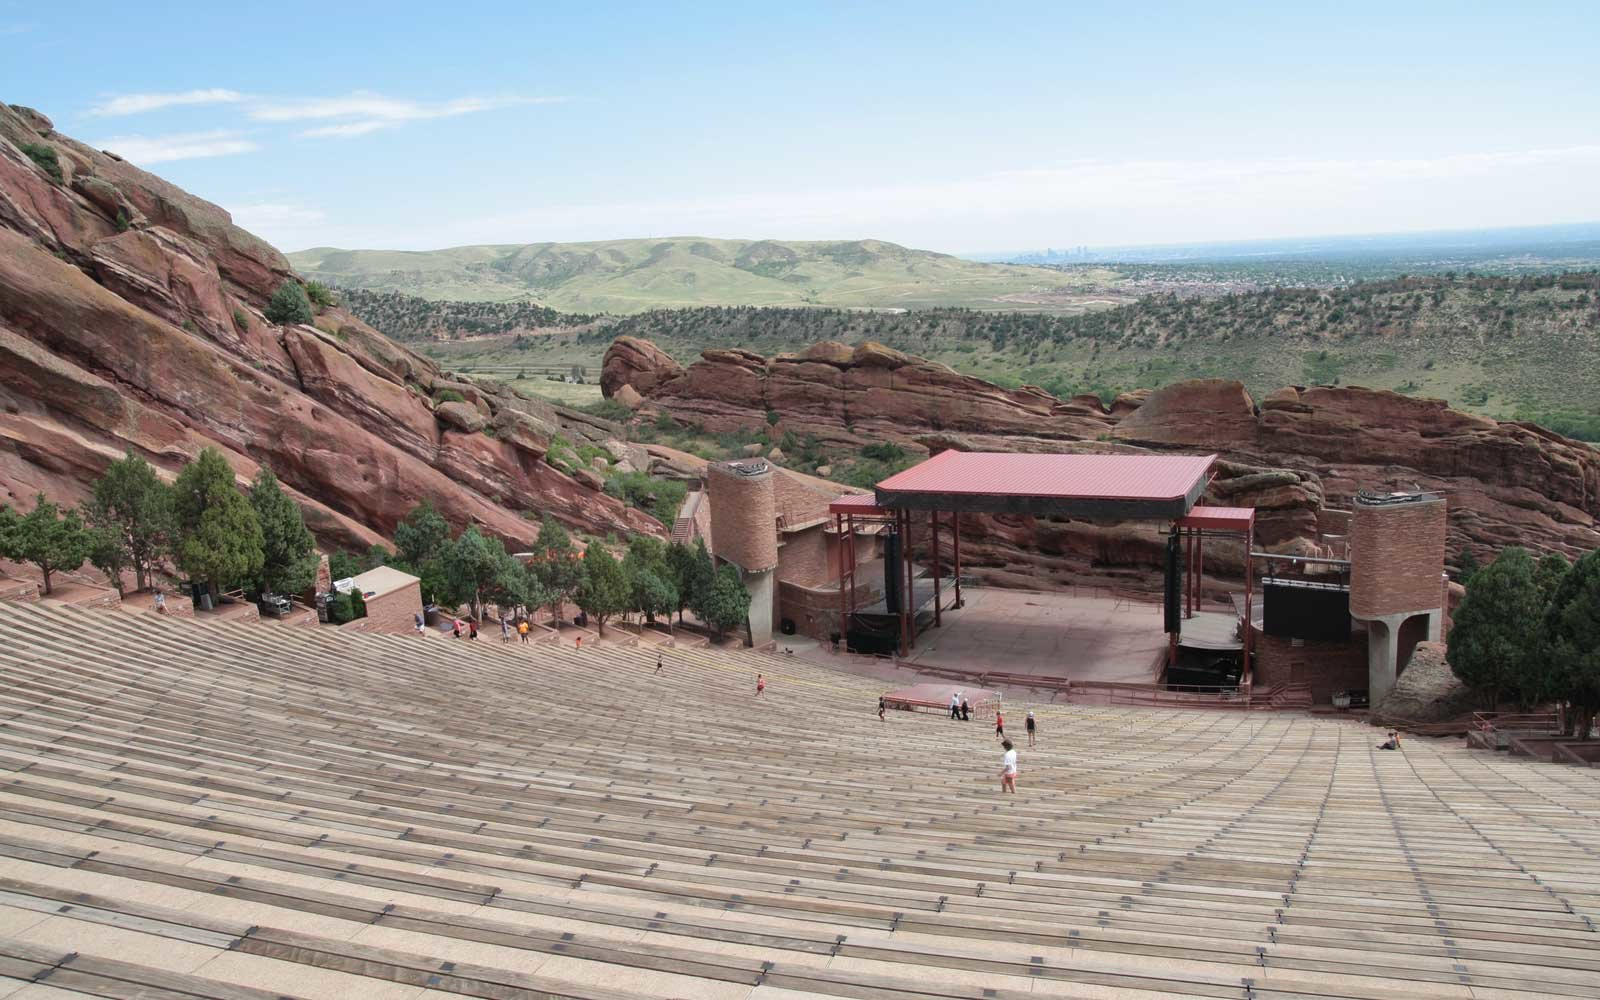 Red rocks amphitheatre, Denver, Colorado.